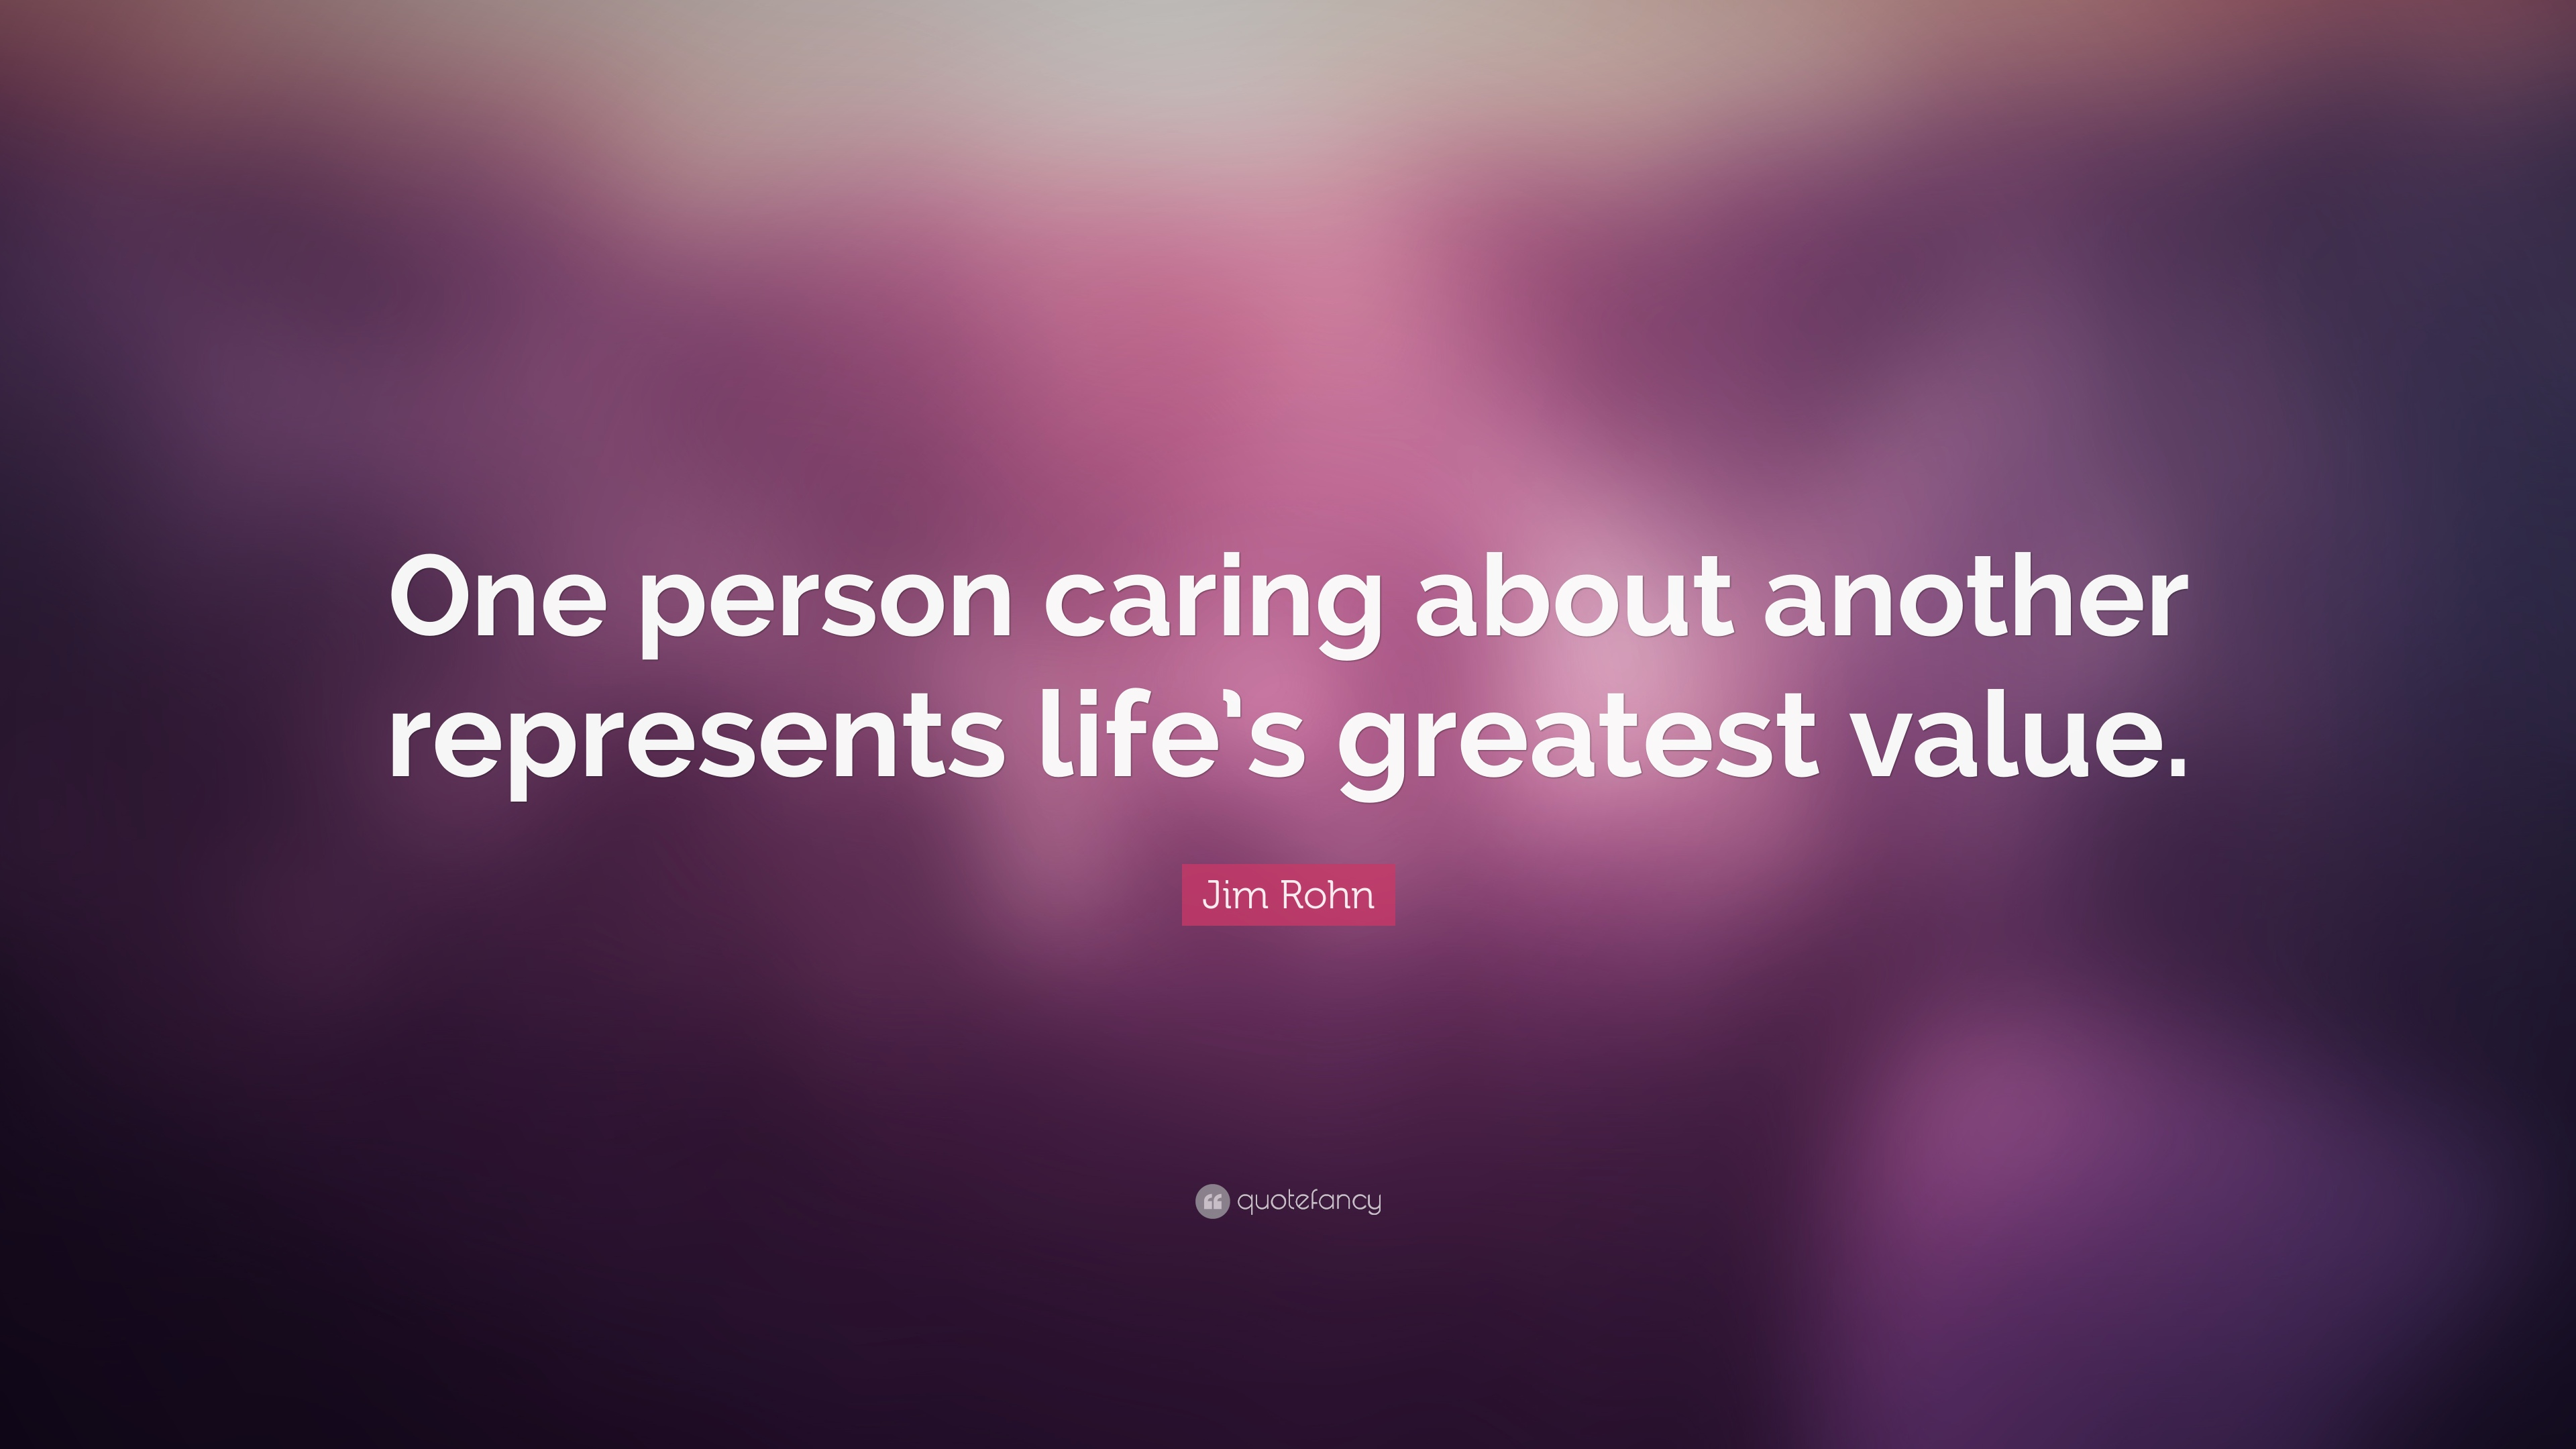 Quotes About Caring Amusing Caring Quotes 40 Wallpapers  Quotefancy